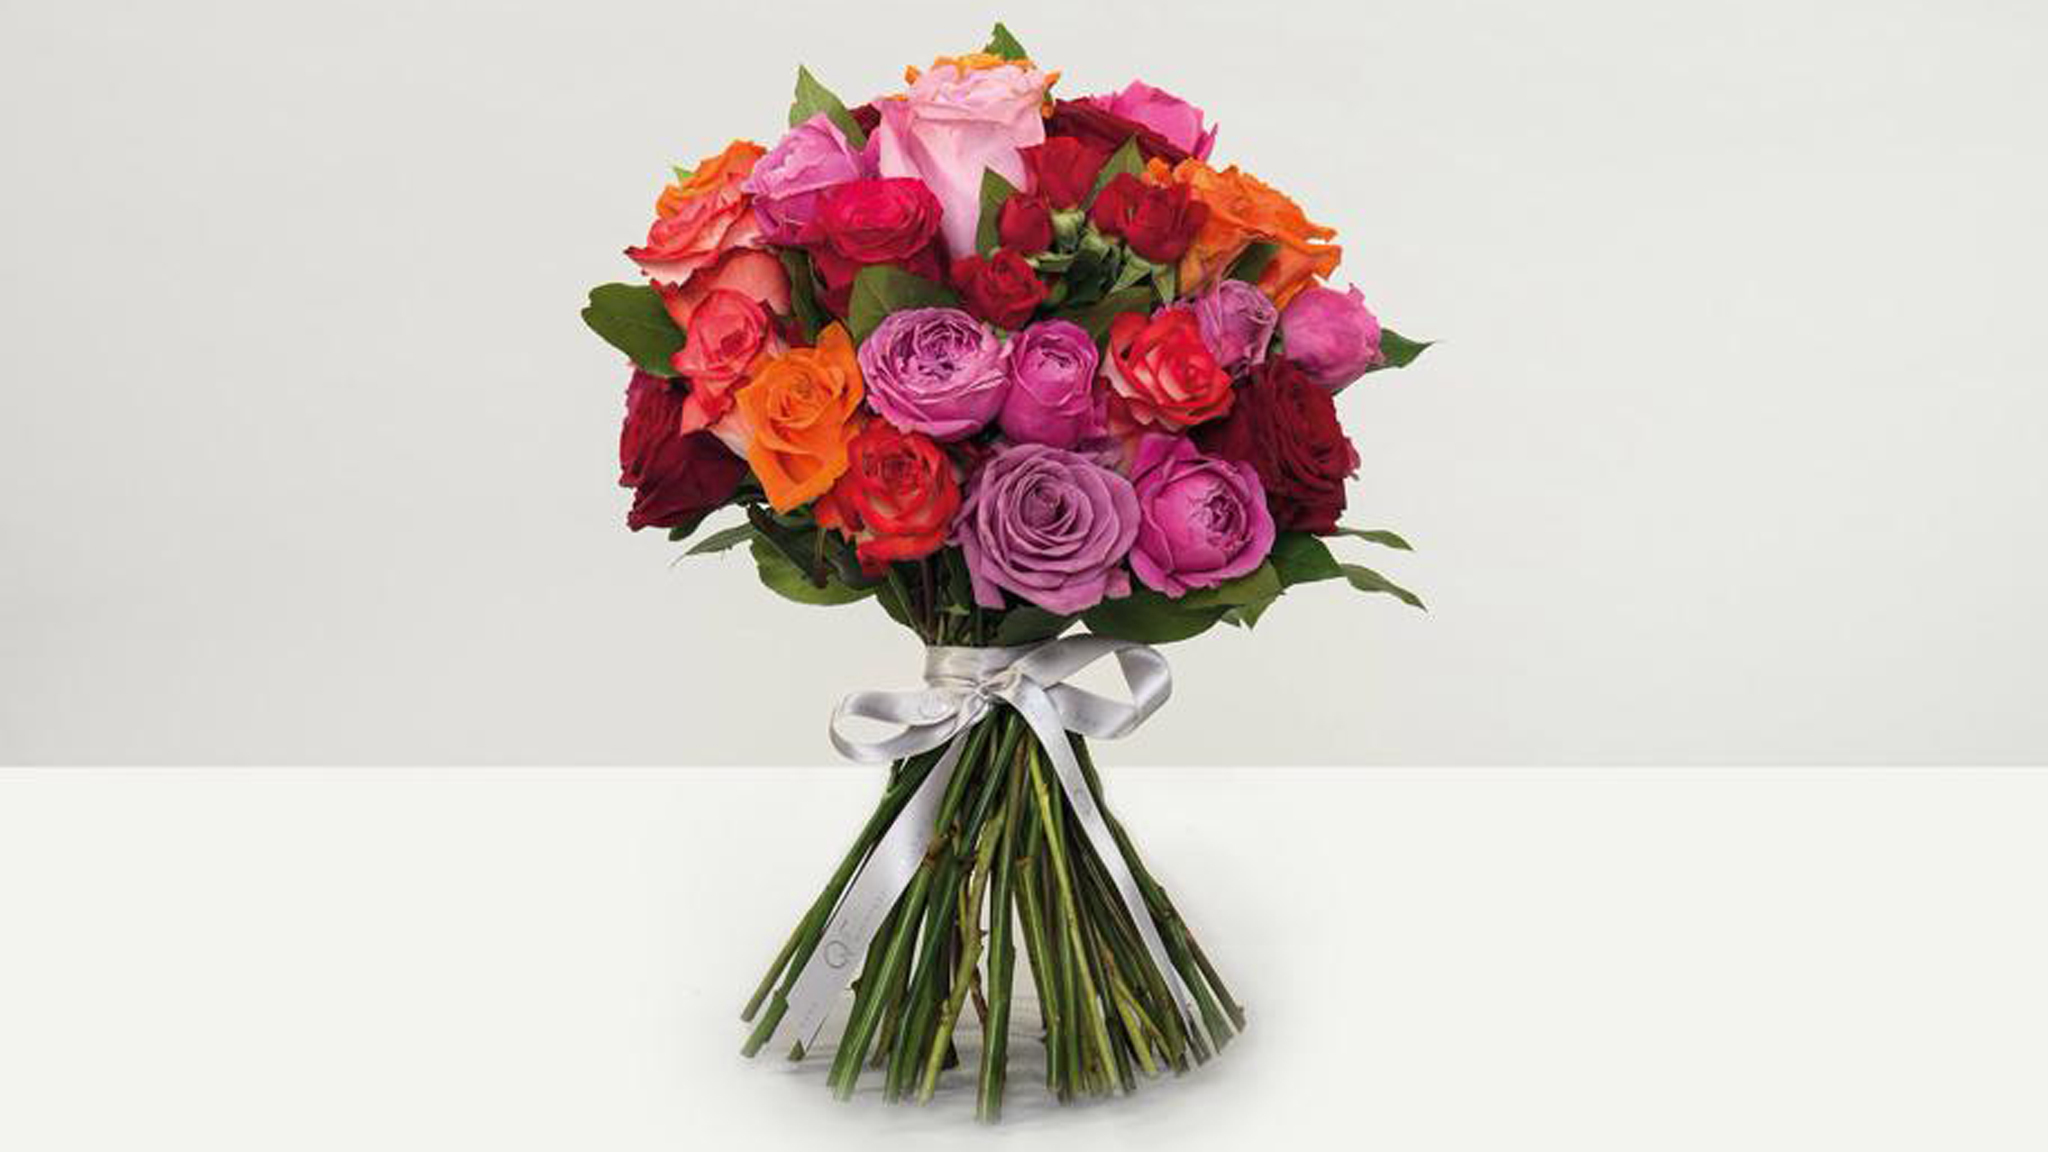 15 online florists for flower deliveries in london right now quintessentially flowers izmirmasajfo